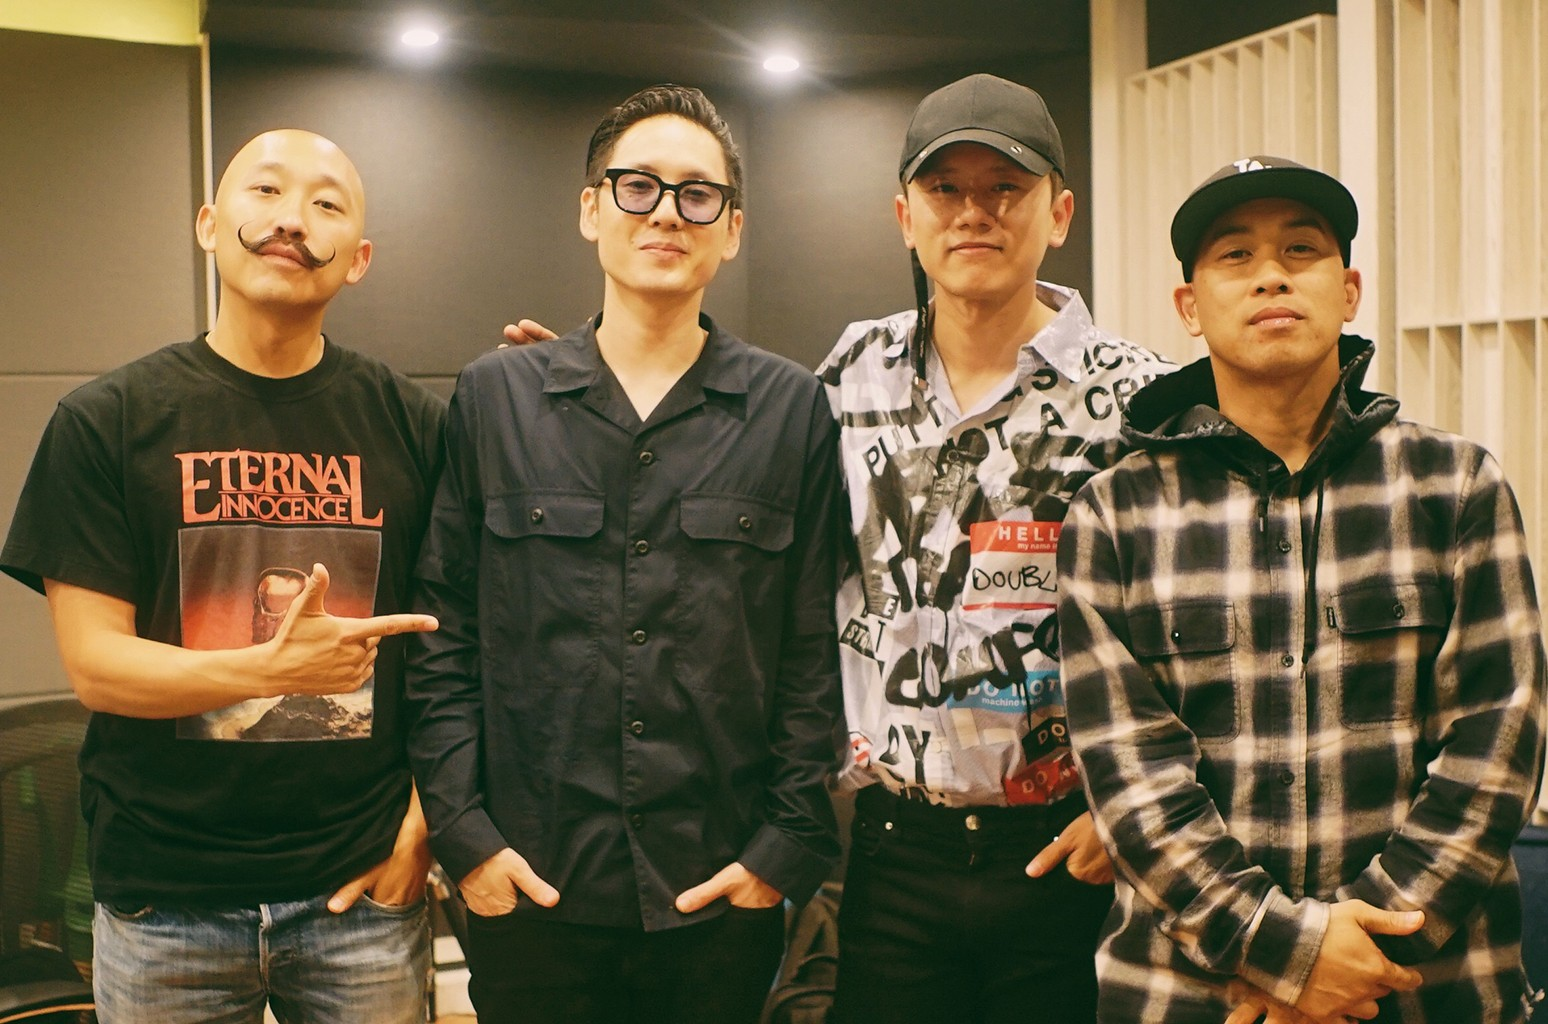 James Roh (Prohgress), Kevin Nishimura (Kev Nish), Jason Zhang and Virman Coquia (DJ Virman) at a recording studio in Shanghai, China.